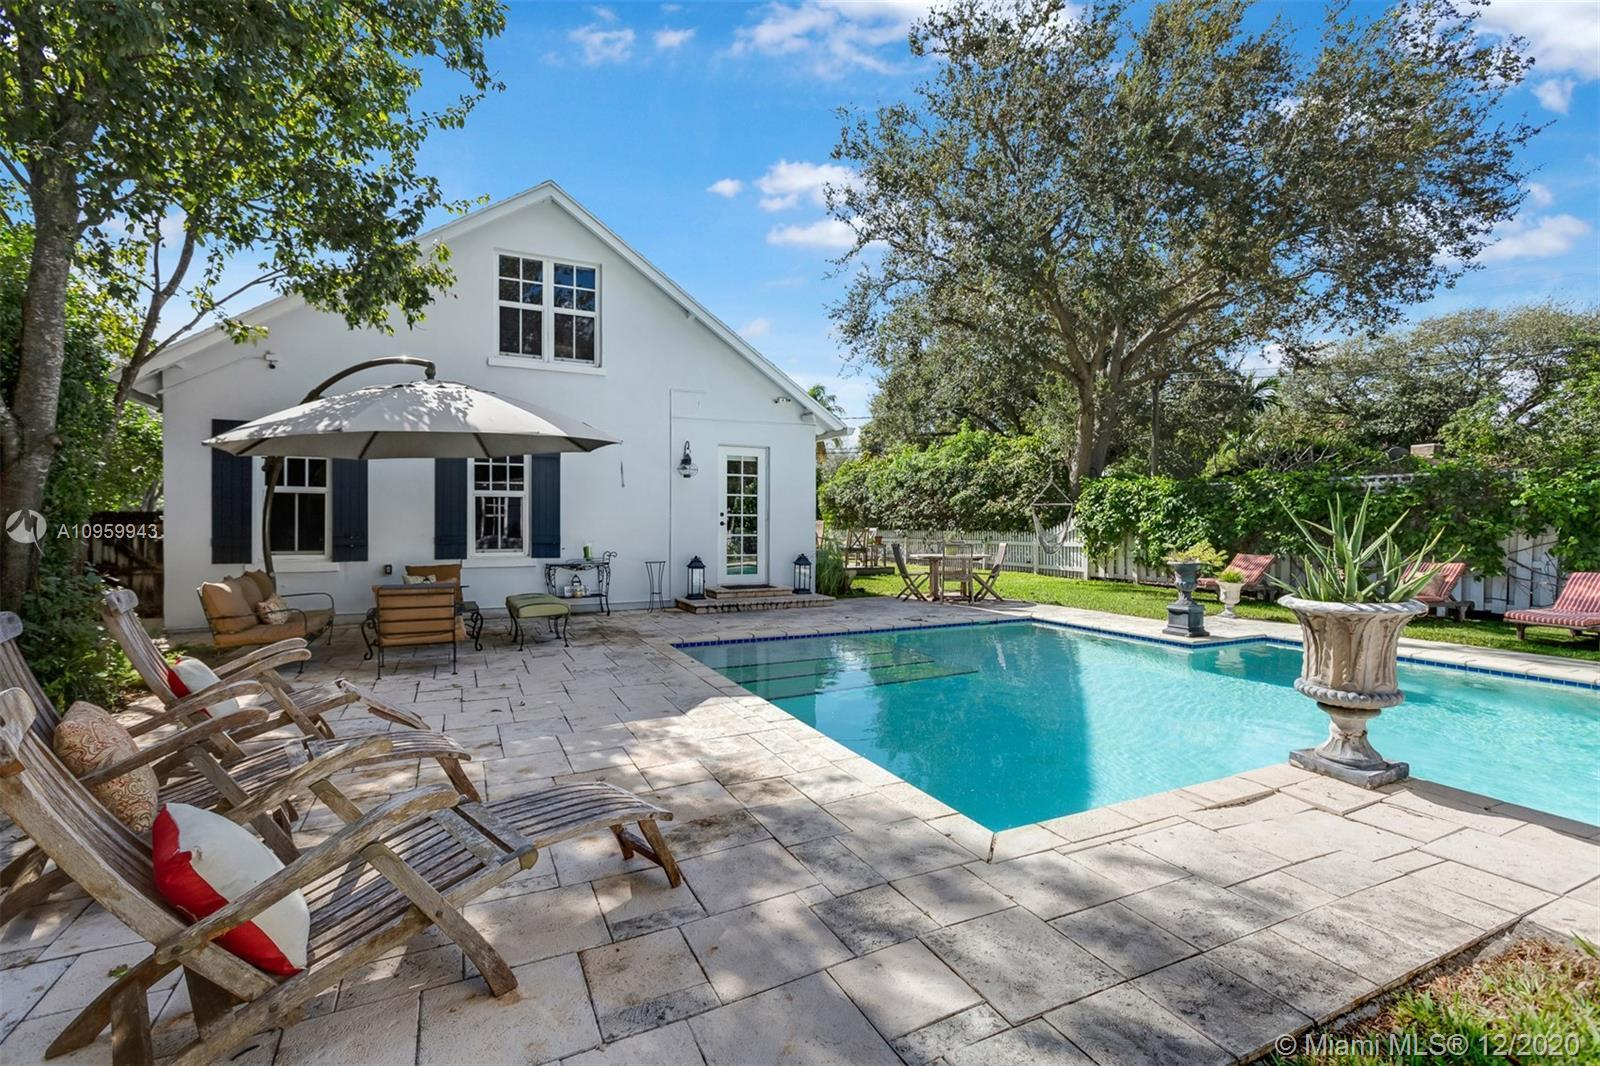 Charming doesn't even begin to describe this 1930 cottage-style home surrounded by white picket fenc